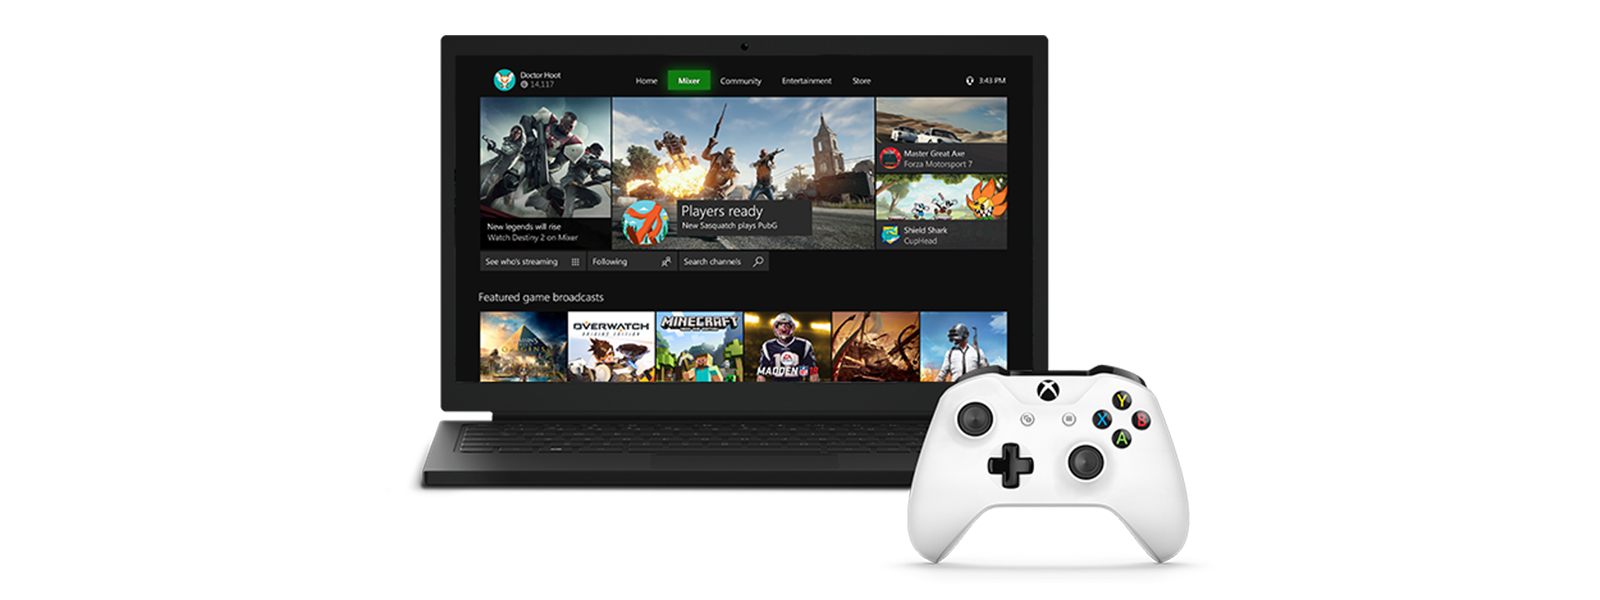 New Mixer interface for Windows 10 gaming